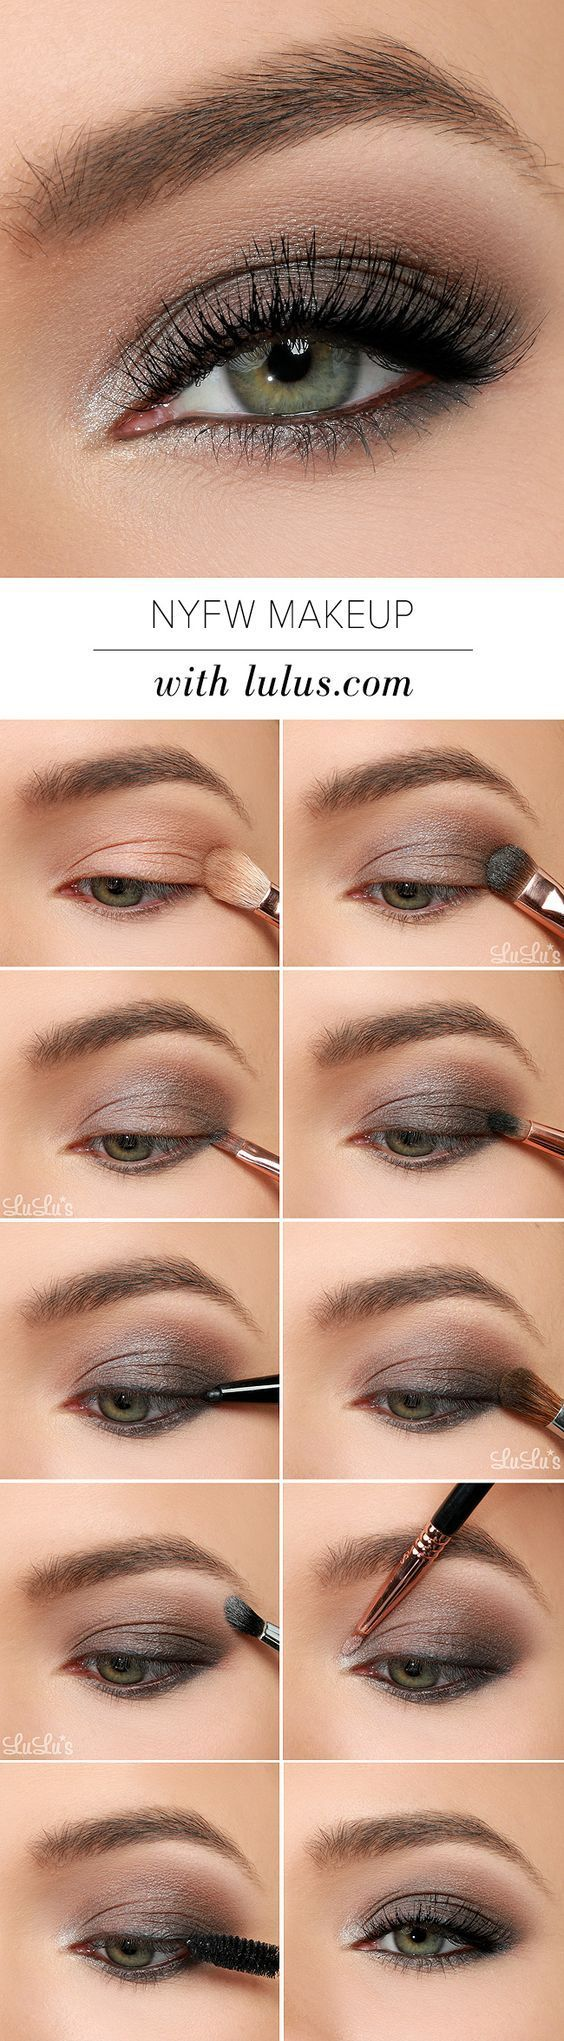 2015 NYFW Inspired Eye Shadow Tutorial.  http://blog.lulus.com/beauty/lulus-how-to-2015-nyfw-inspired-eye-shadow-tutorial/